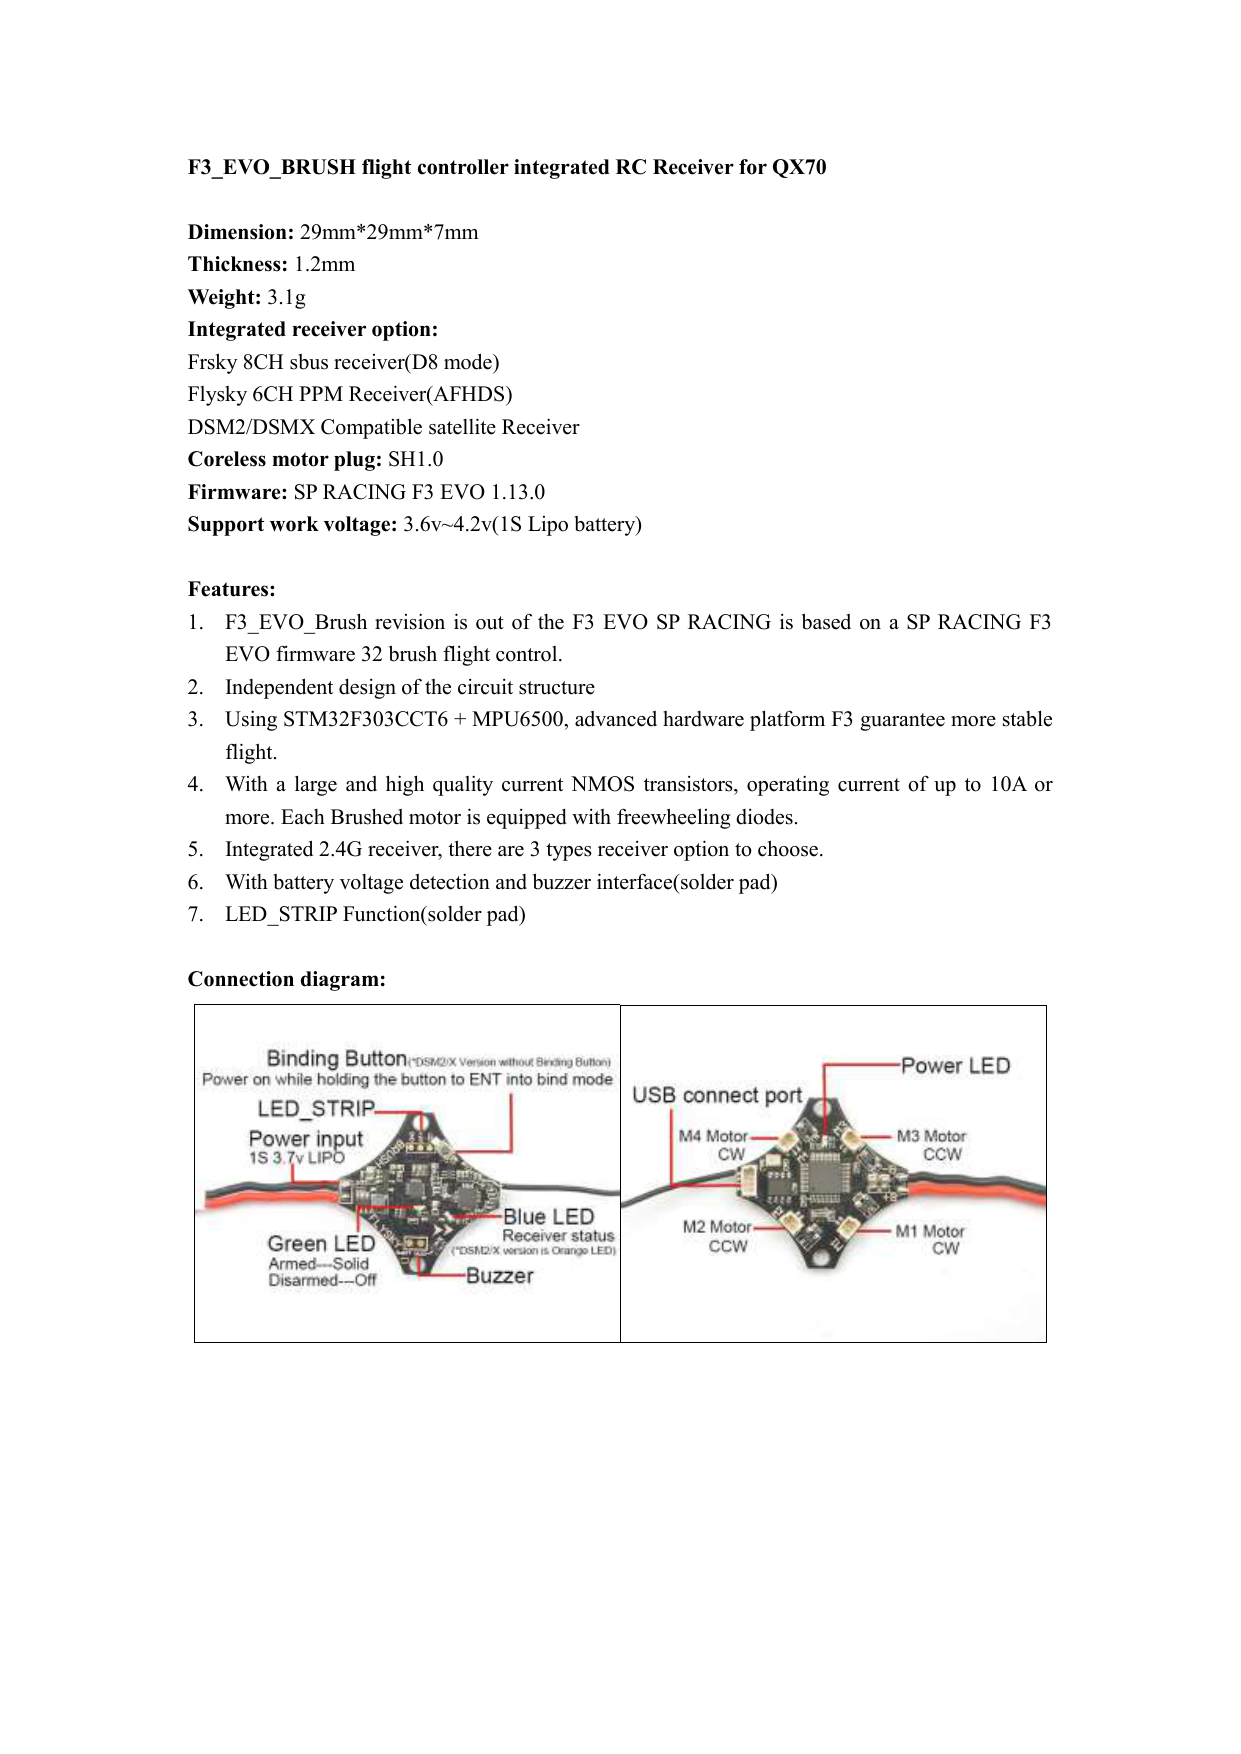 beste underbody rc led wiring diagram galerie die besten rh capressocoffee info Wiring Diagram for a Small RC Airplane Servo for RC Helicopter Wiring-Diagram